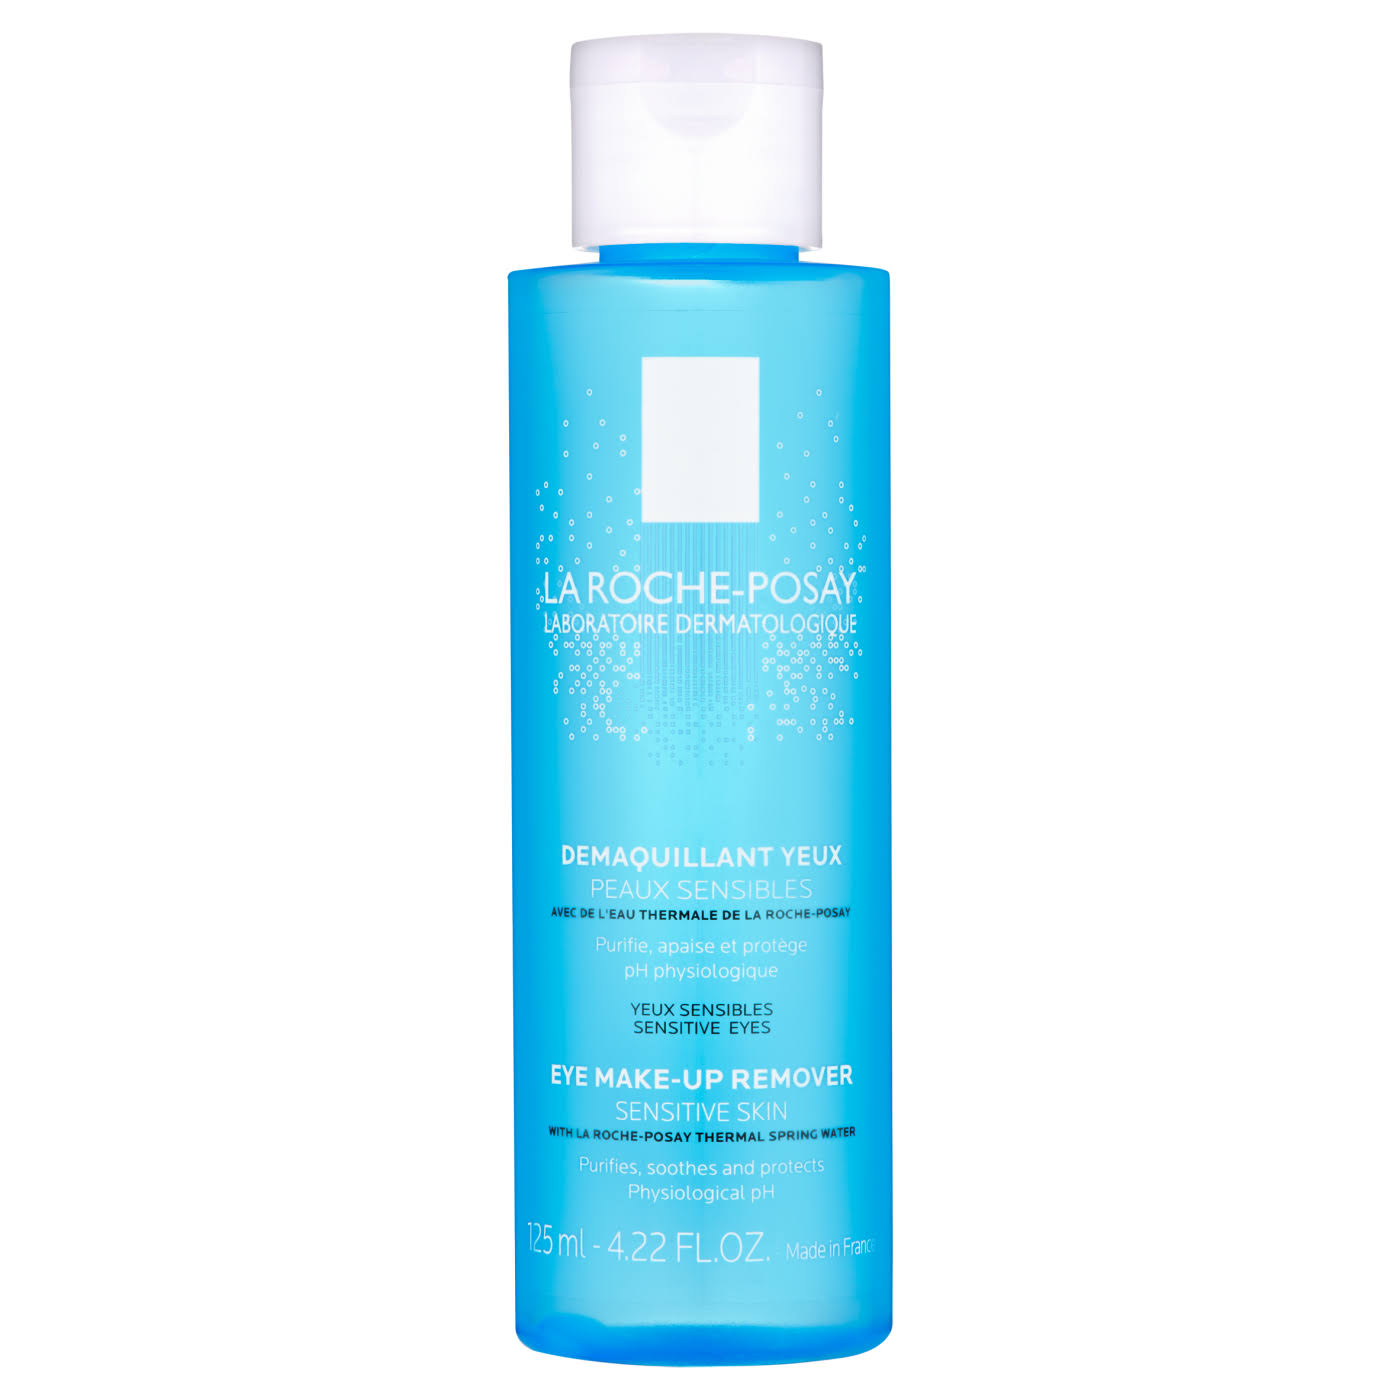 La Roche Posay Eye Make-up Remover 125ml